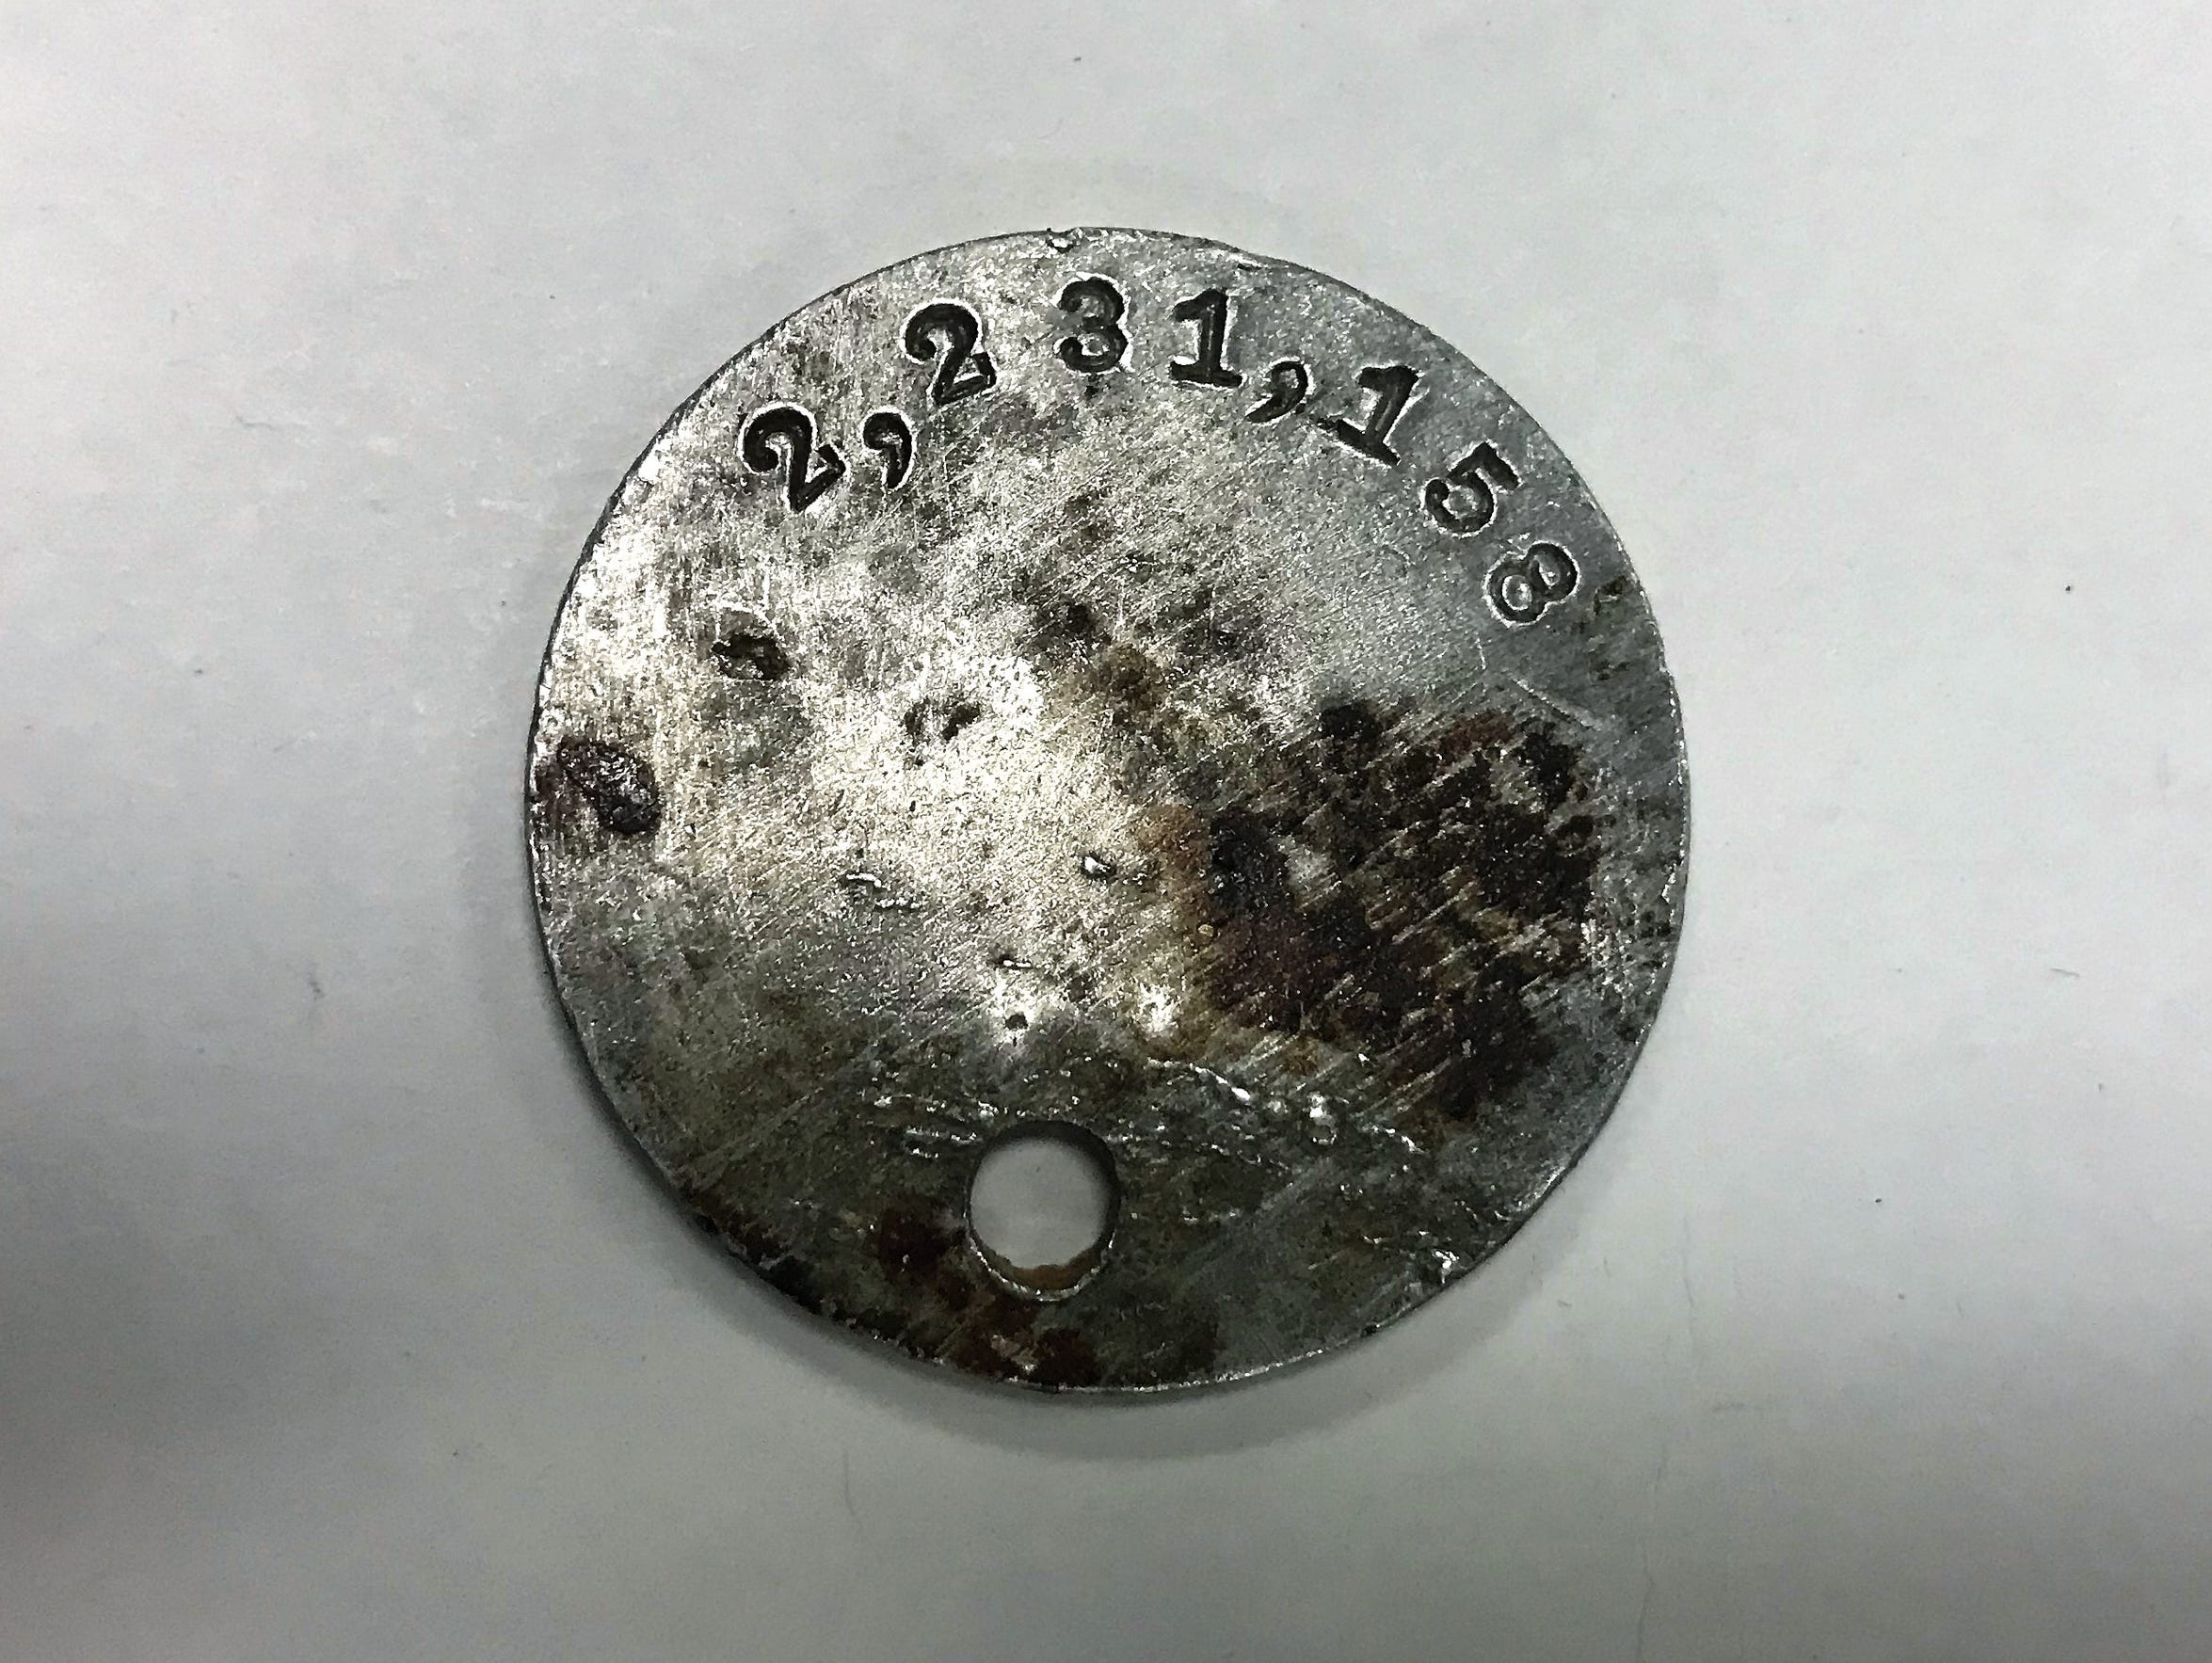 A side of Willie Tubb's World War I dog tag, showing